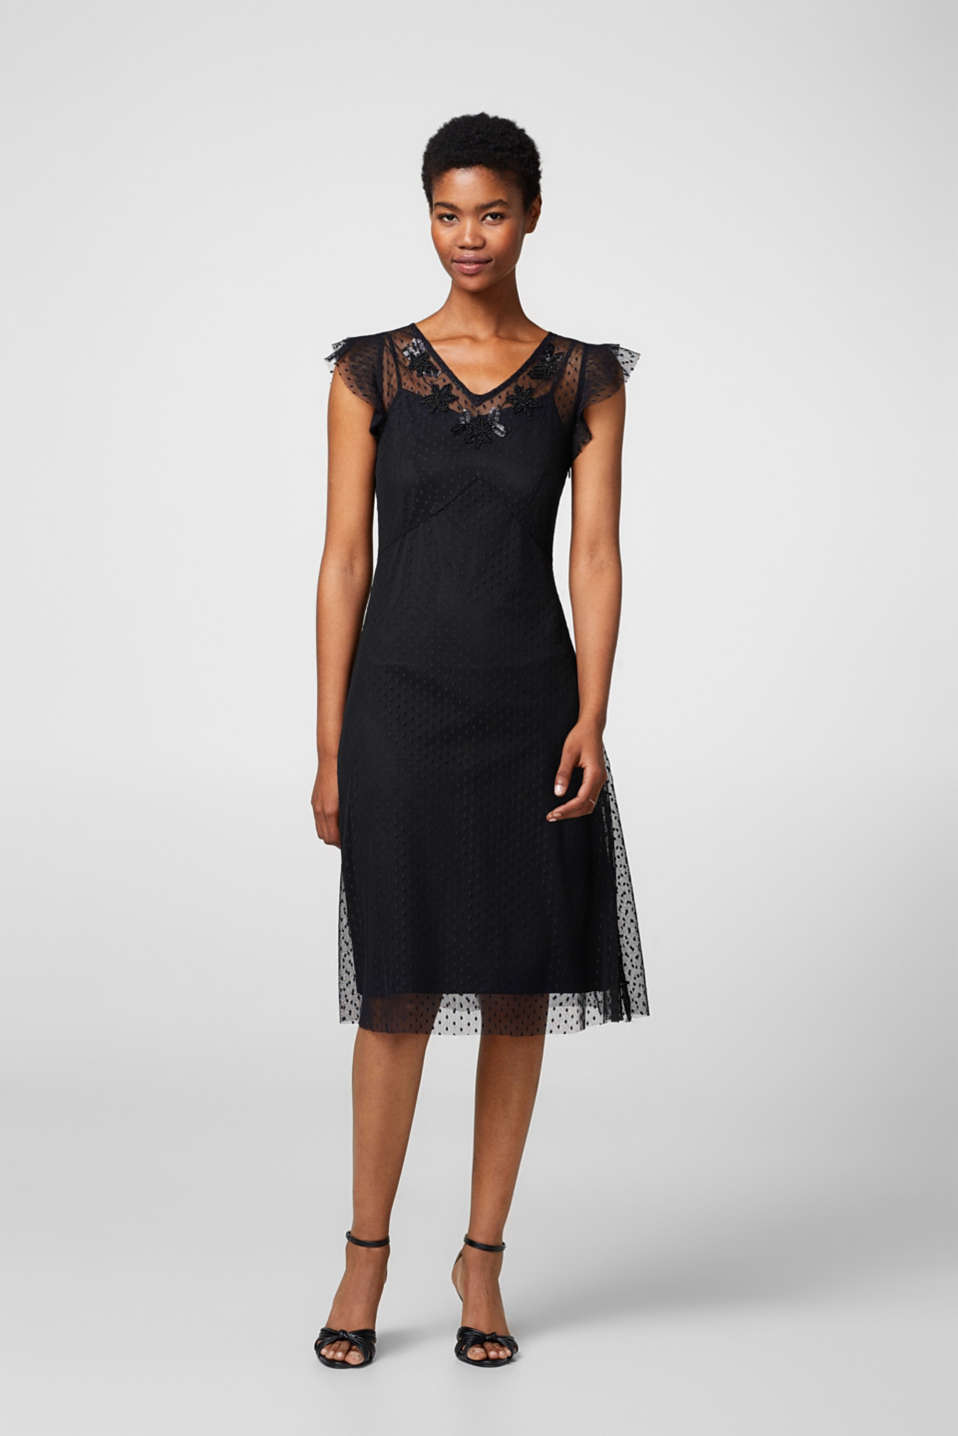 Esprit - Delicate mesh dress, polka dots + beads